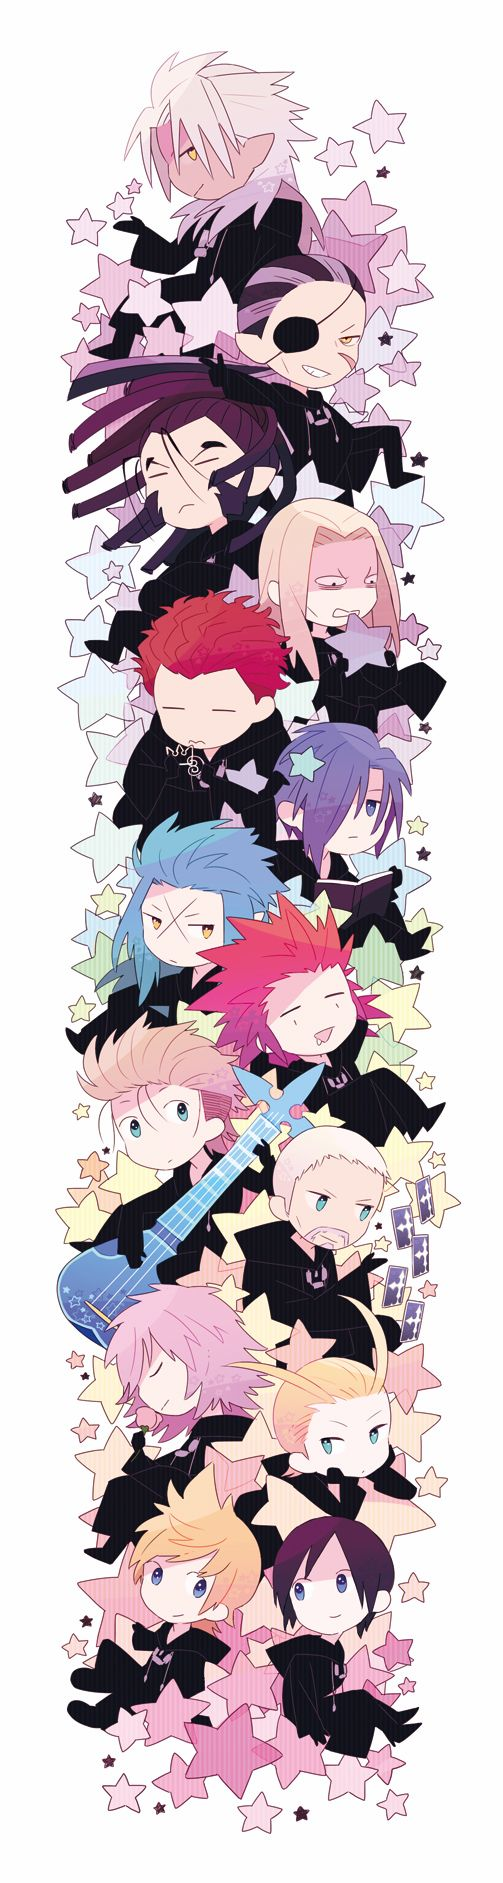 Chibi Organization XIII, Kingdom Hearts 358/2 Days